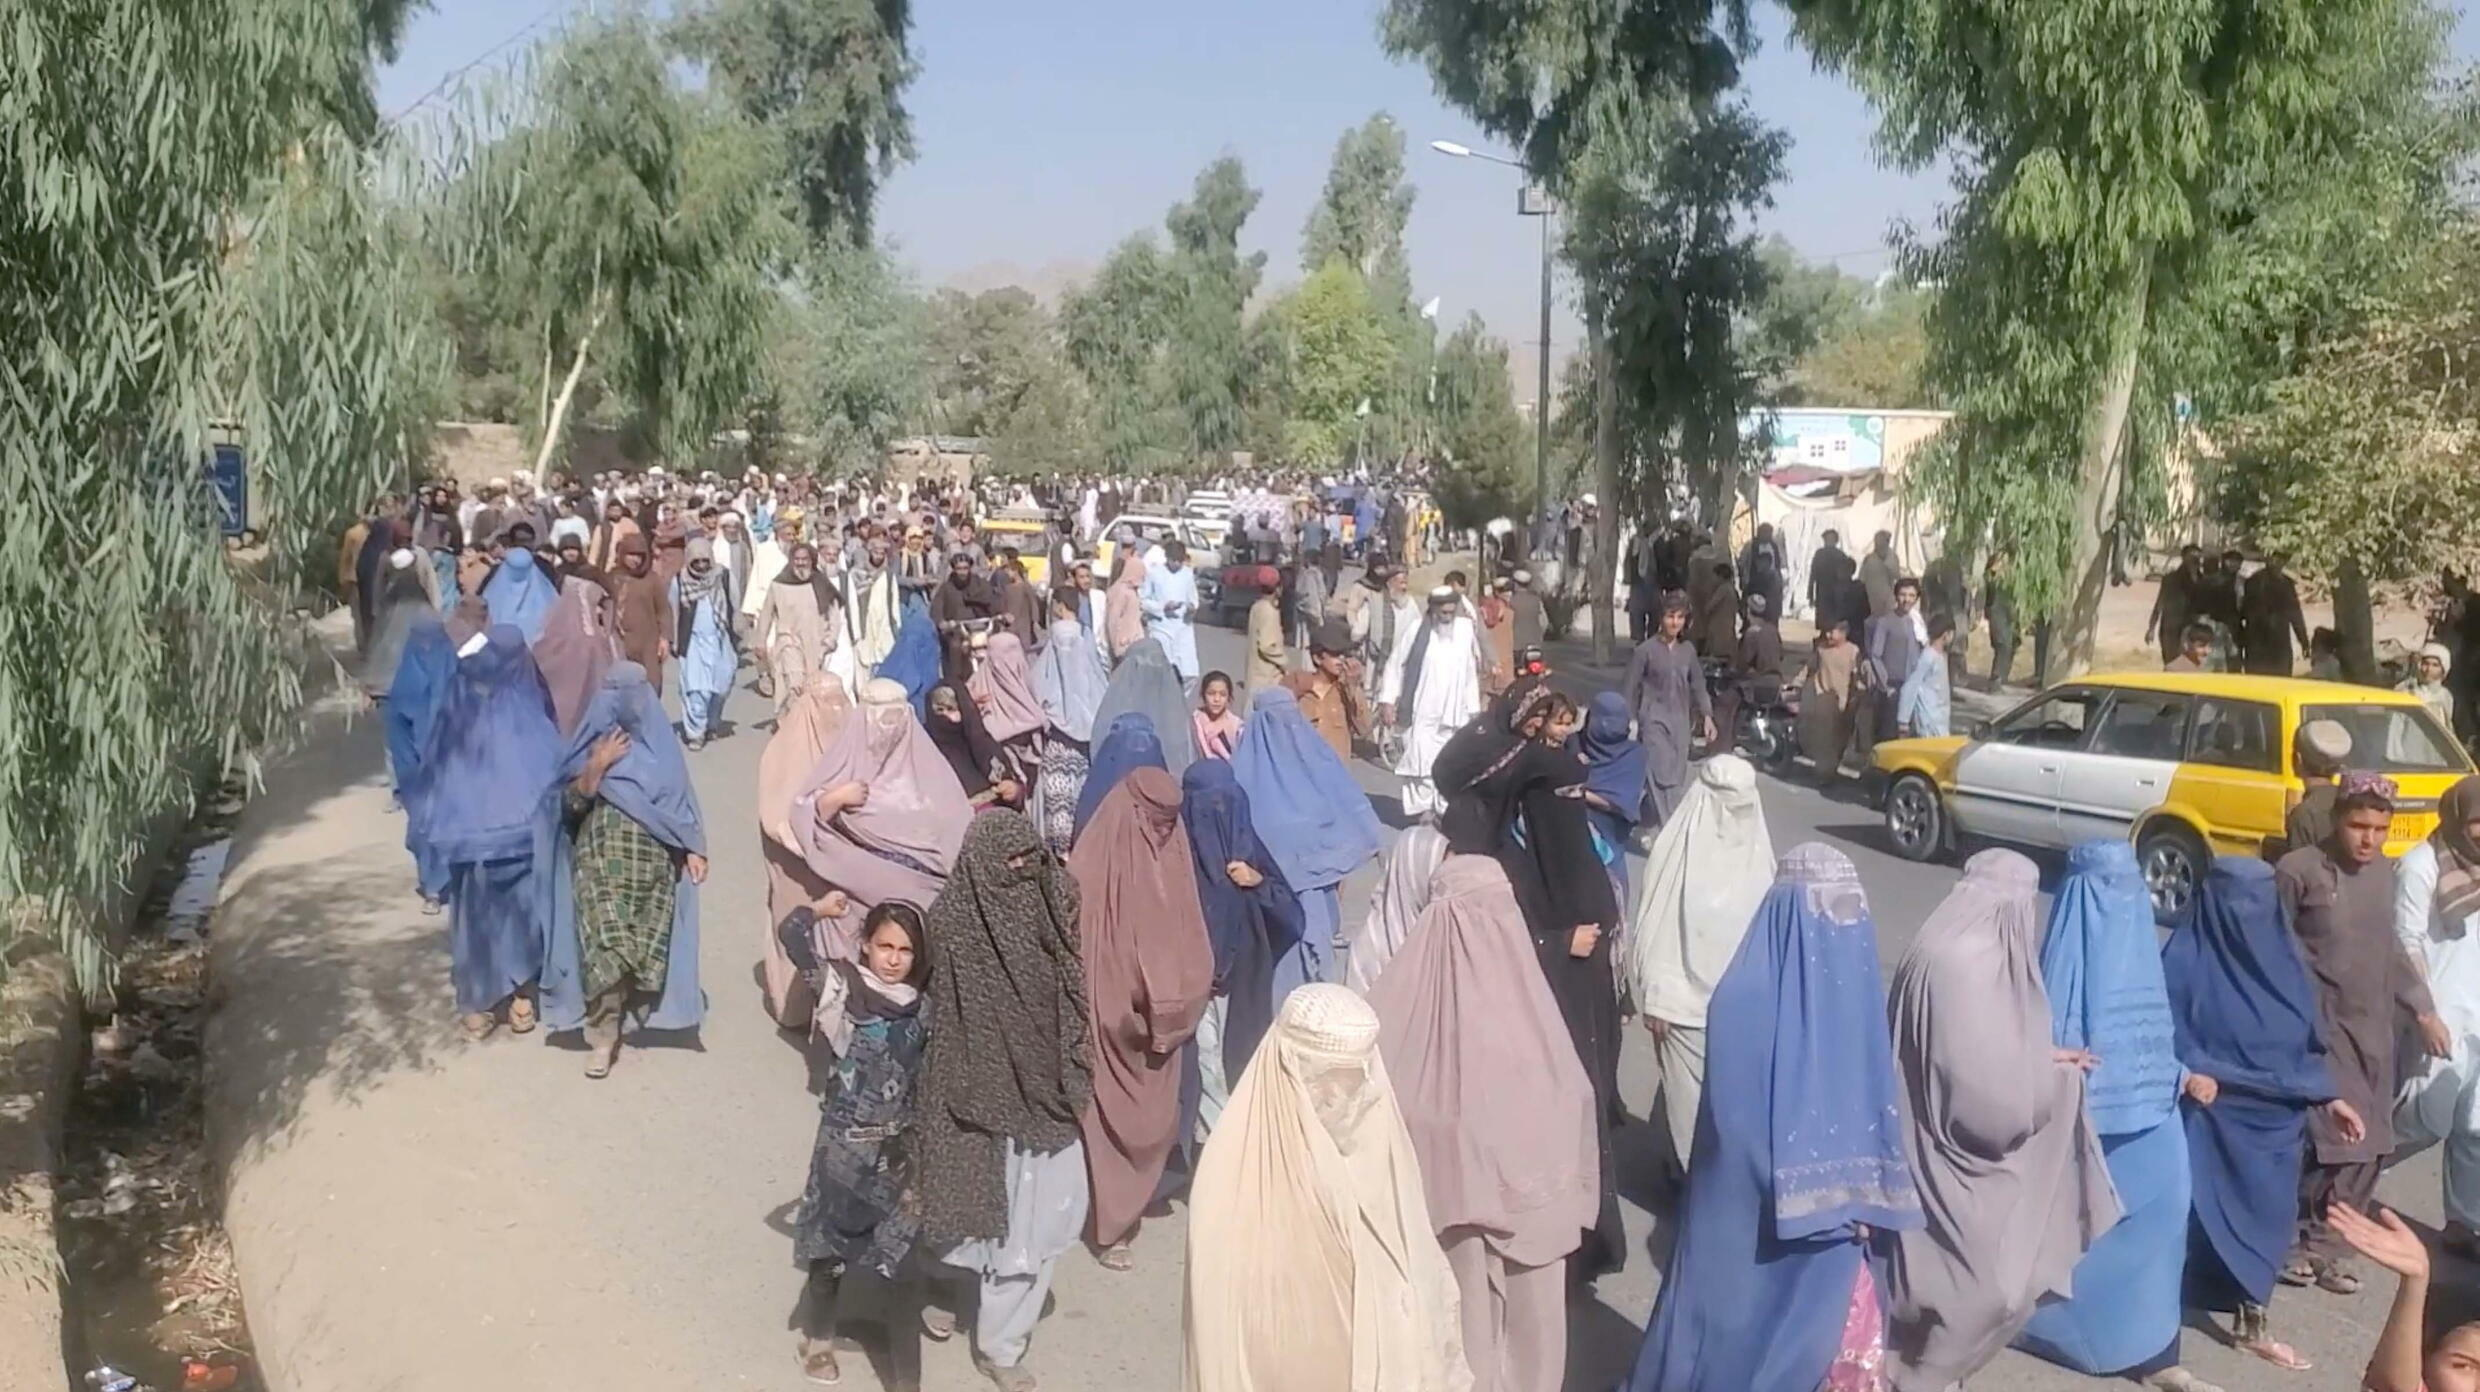 2021-09-14T093645Z_755024059_RC2LPP91YWYA_RTRMADP_3_AFGHANISTAN-CONFLICT-KANDAHAR-PROTESTS